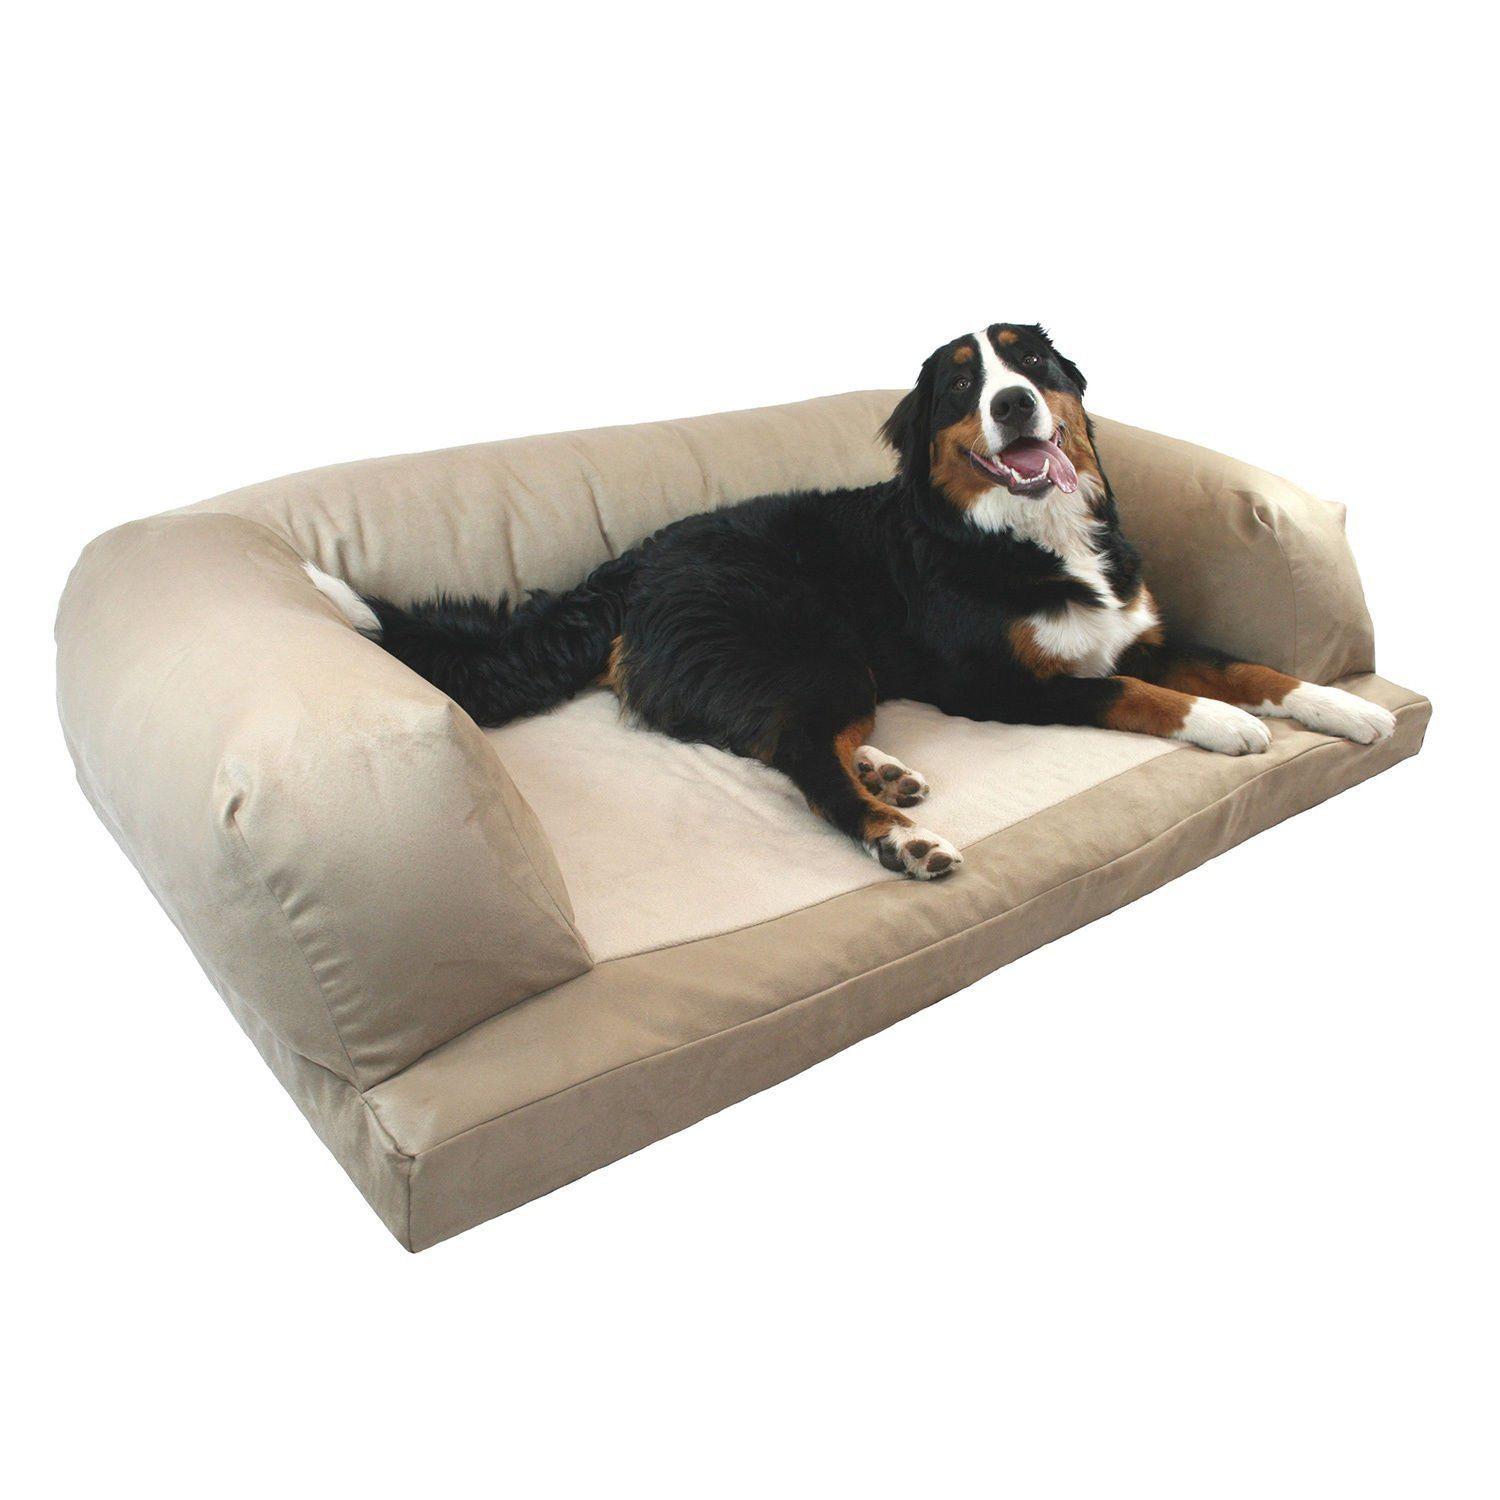 steps overstock a dog large hero clean guides big how bed to beds com